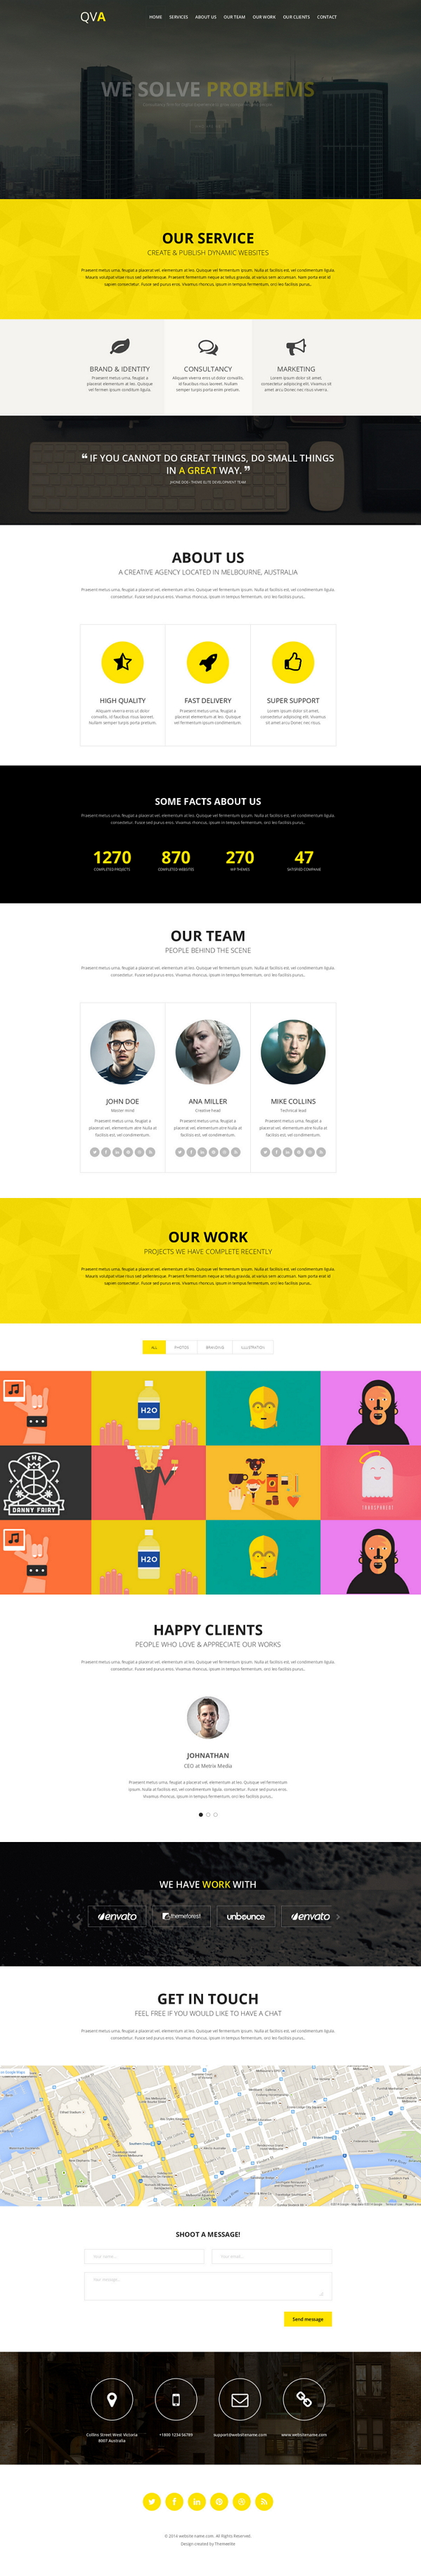 QVA is an responsive One Page Parallax WordPress Template built with HTML5 & CSS3.   It has  ...